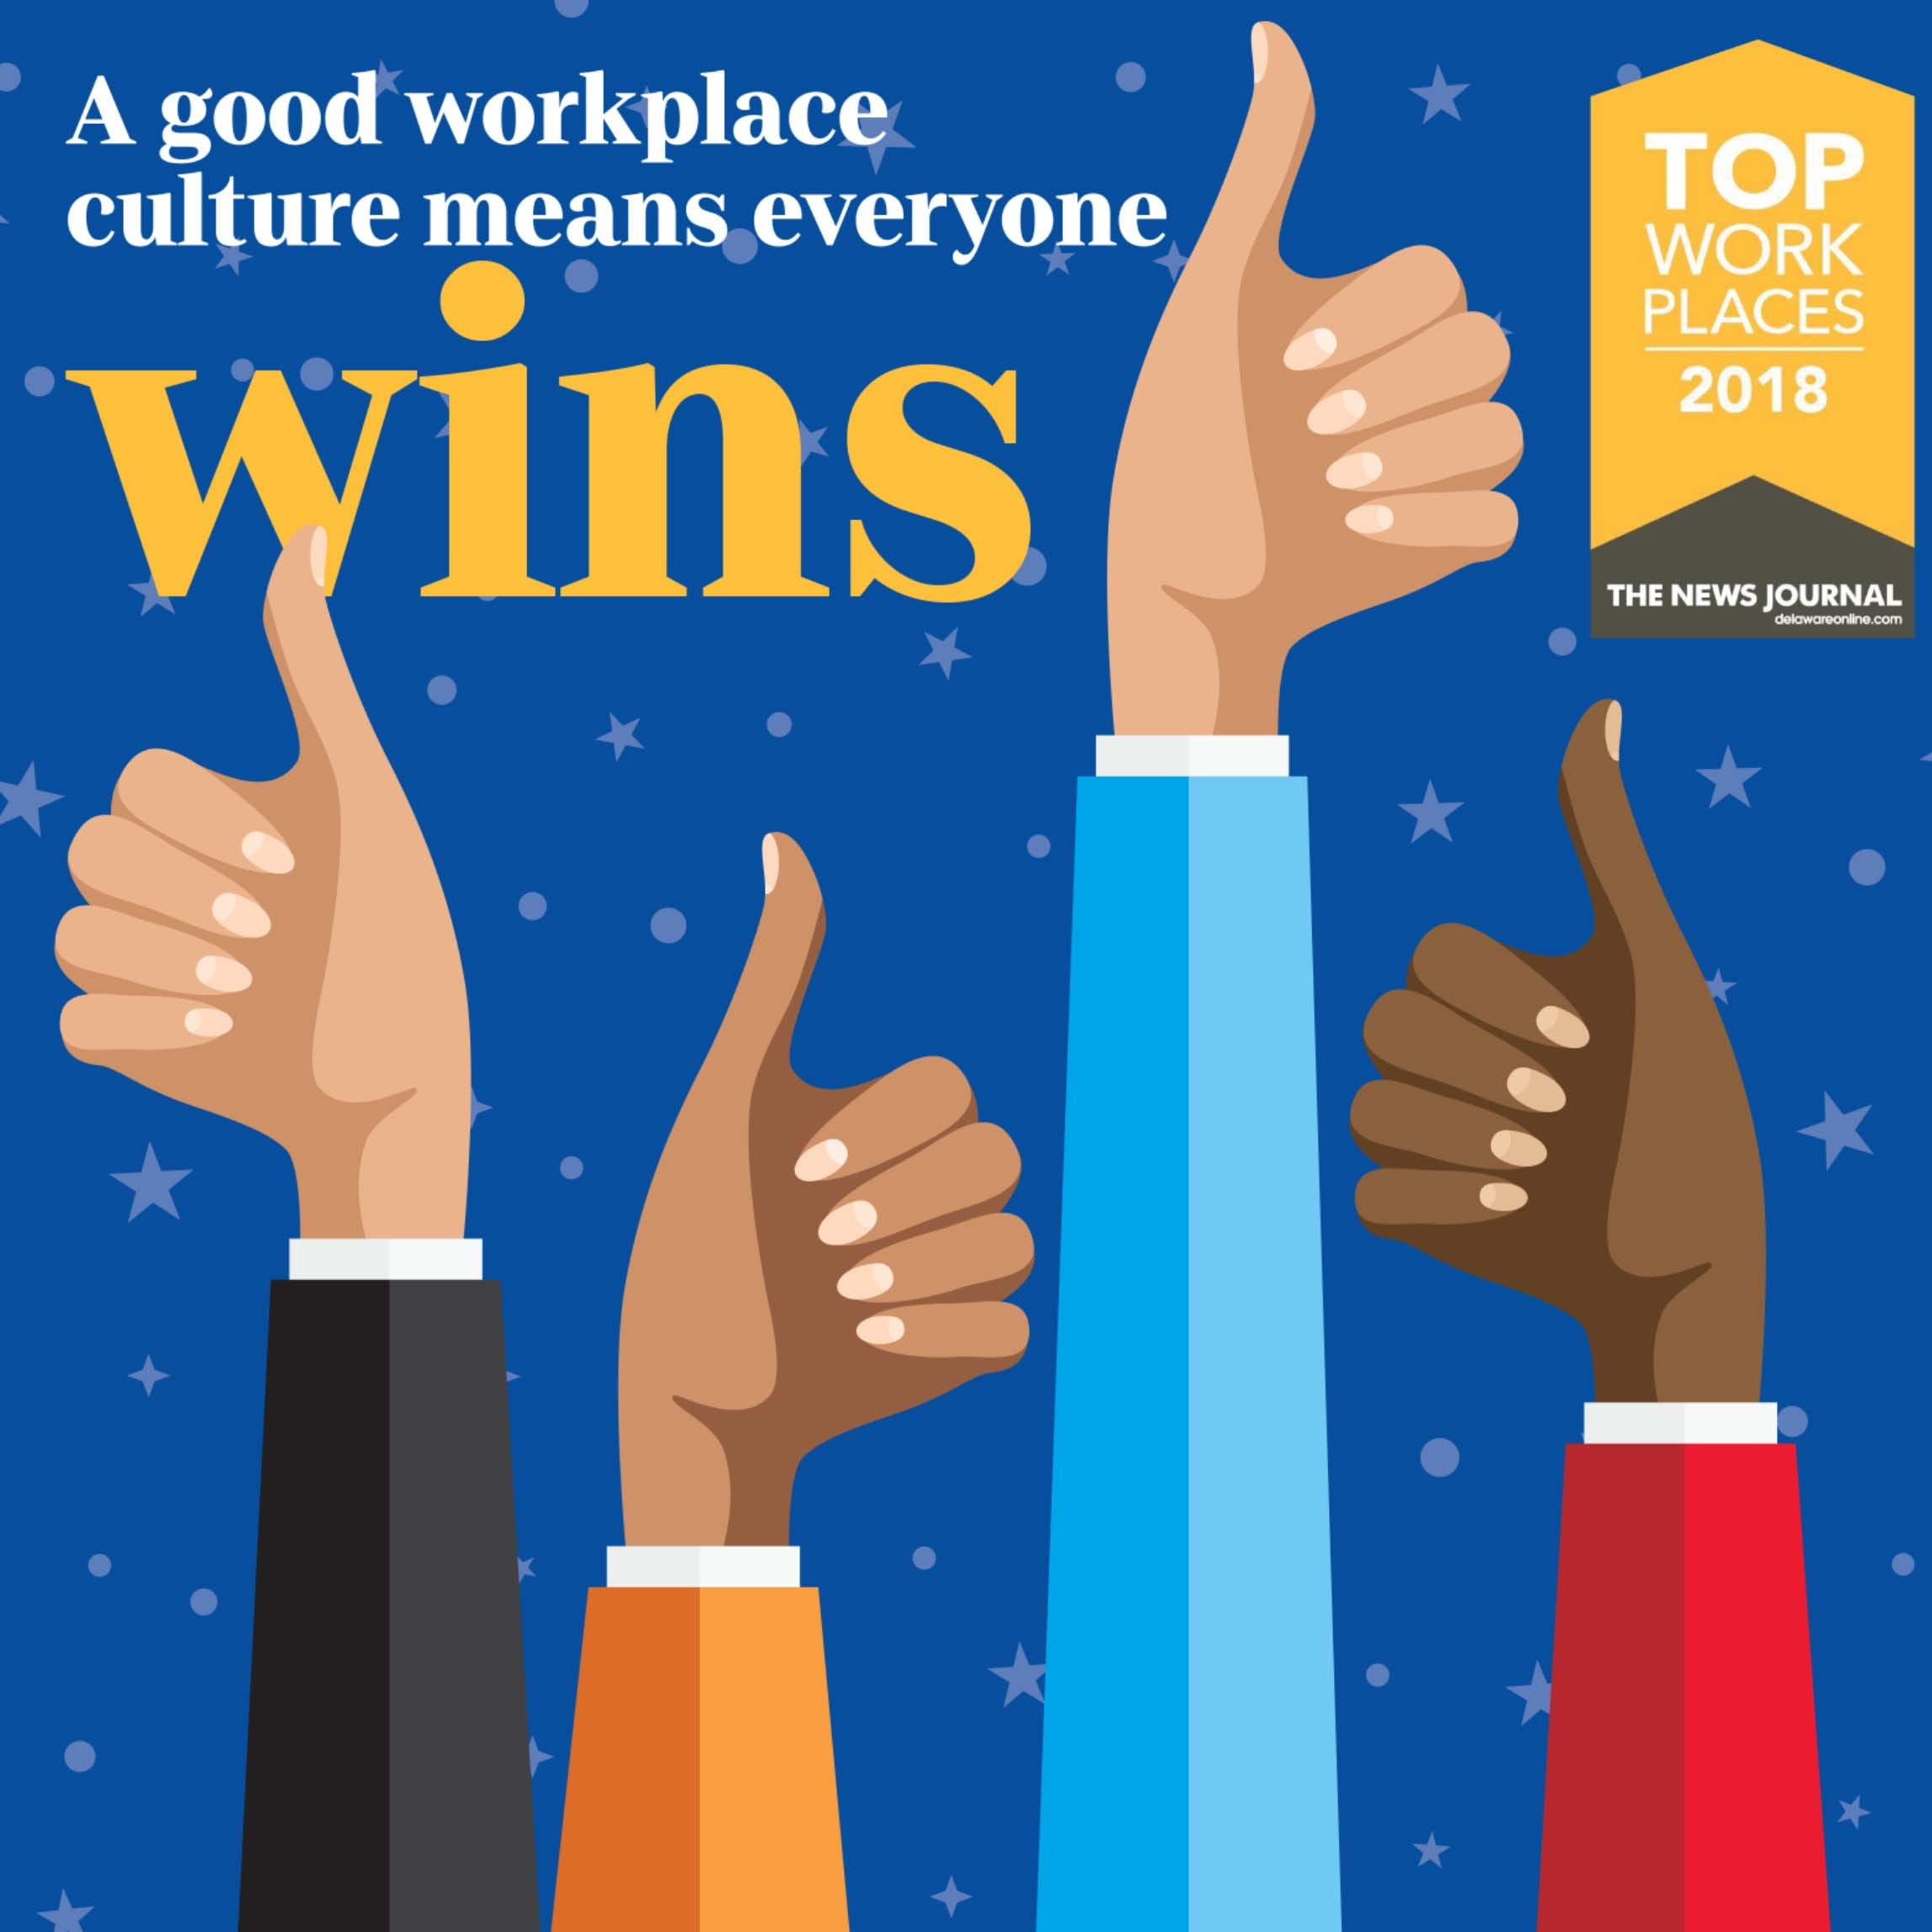 Delaware's 2018 Top Workplaces